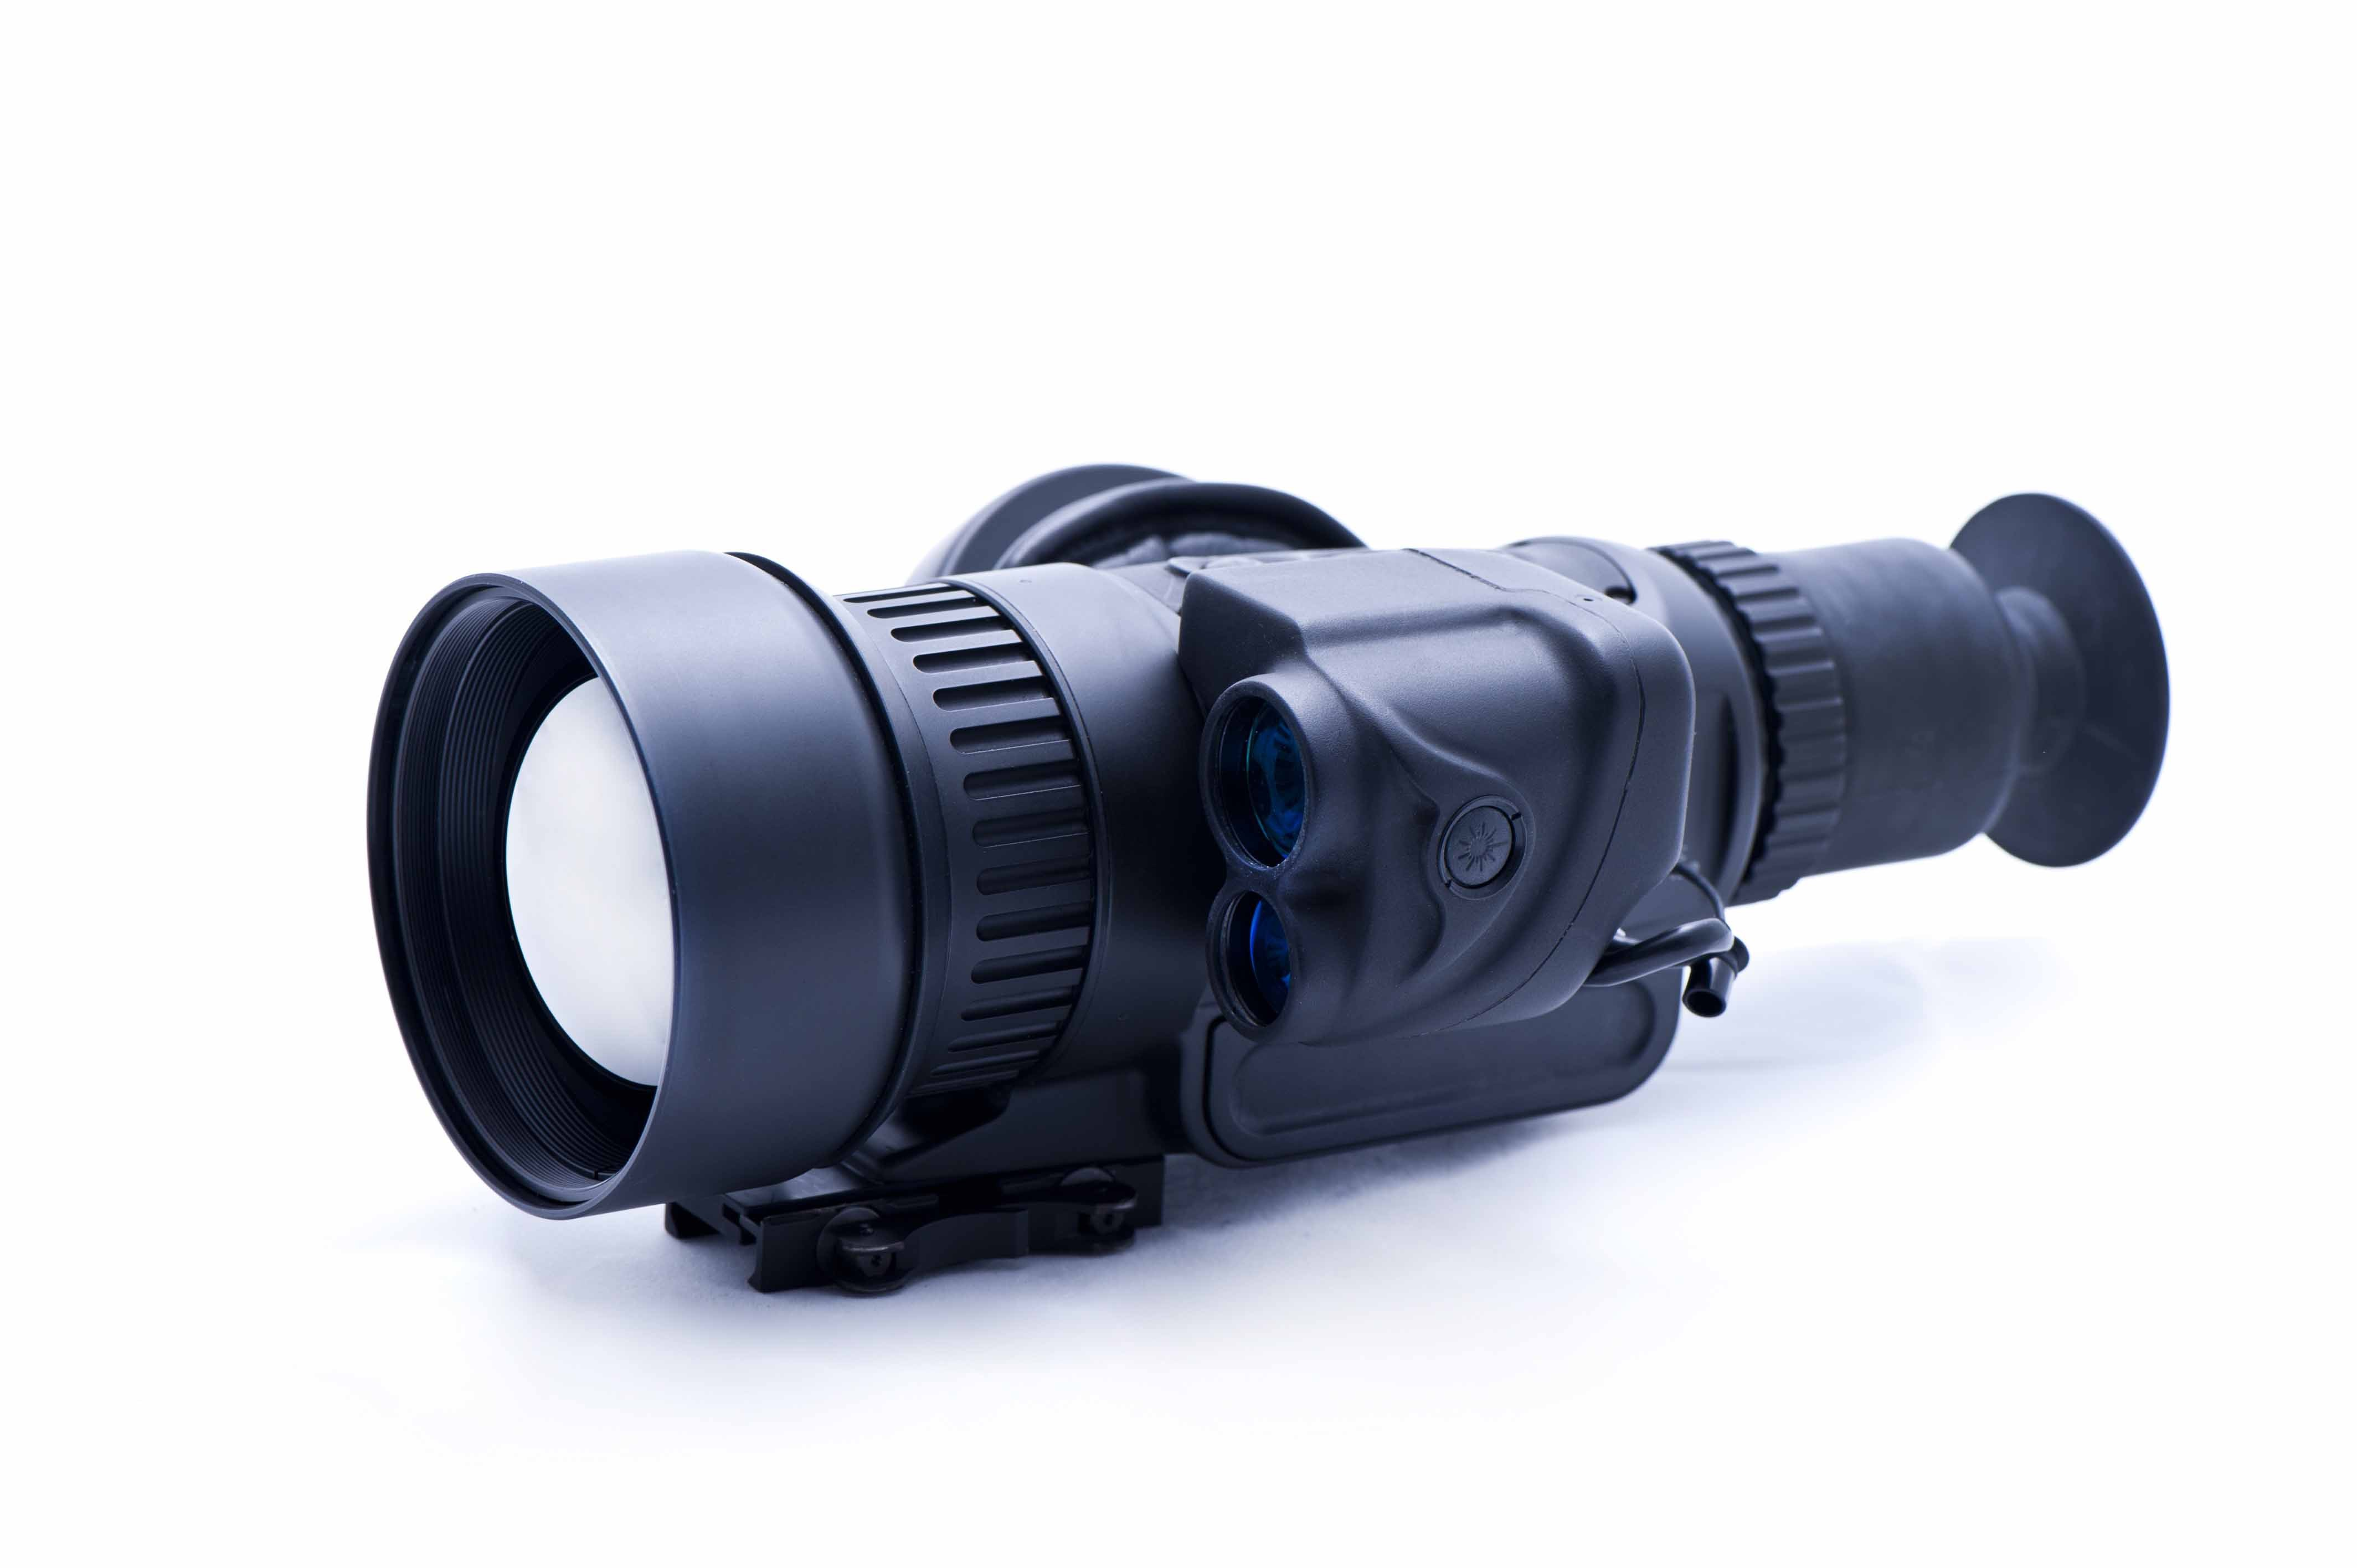 OPTIX IdentifieR 100 + LRF - Thermal Imaging Scope